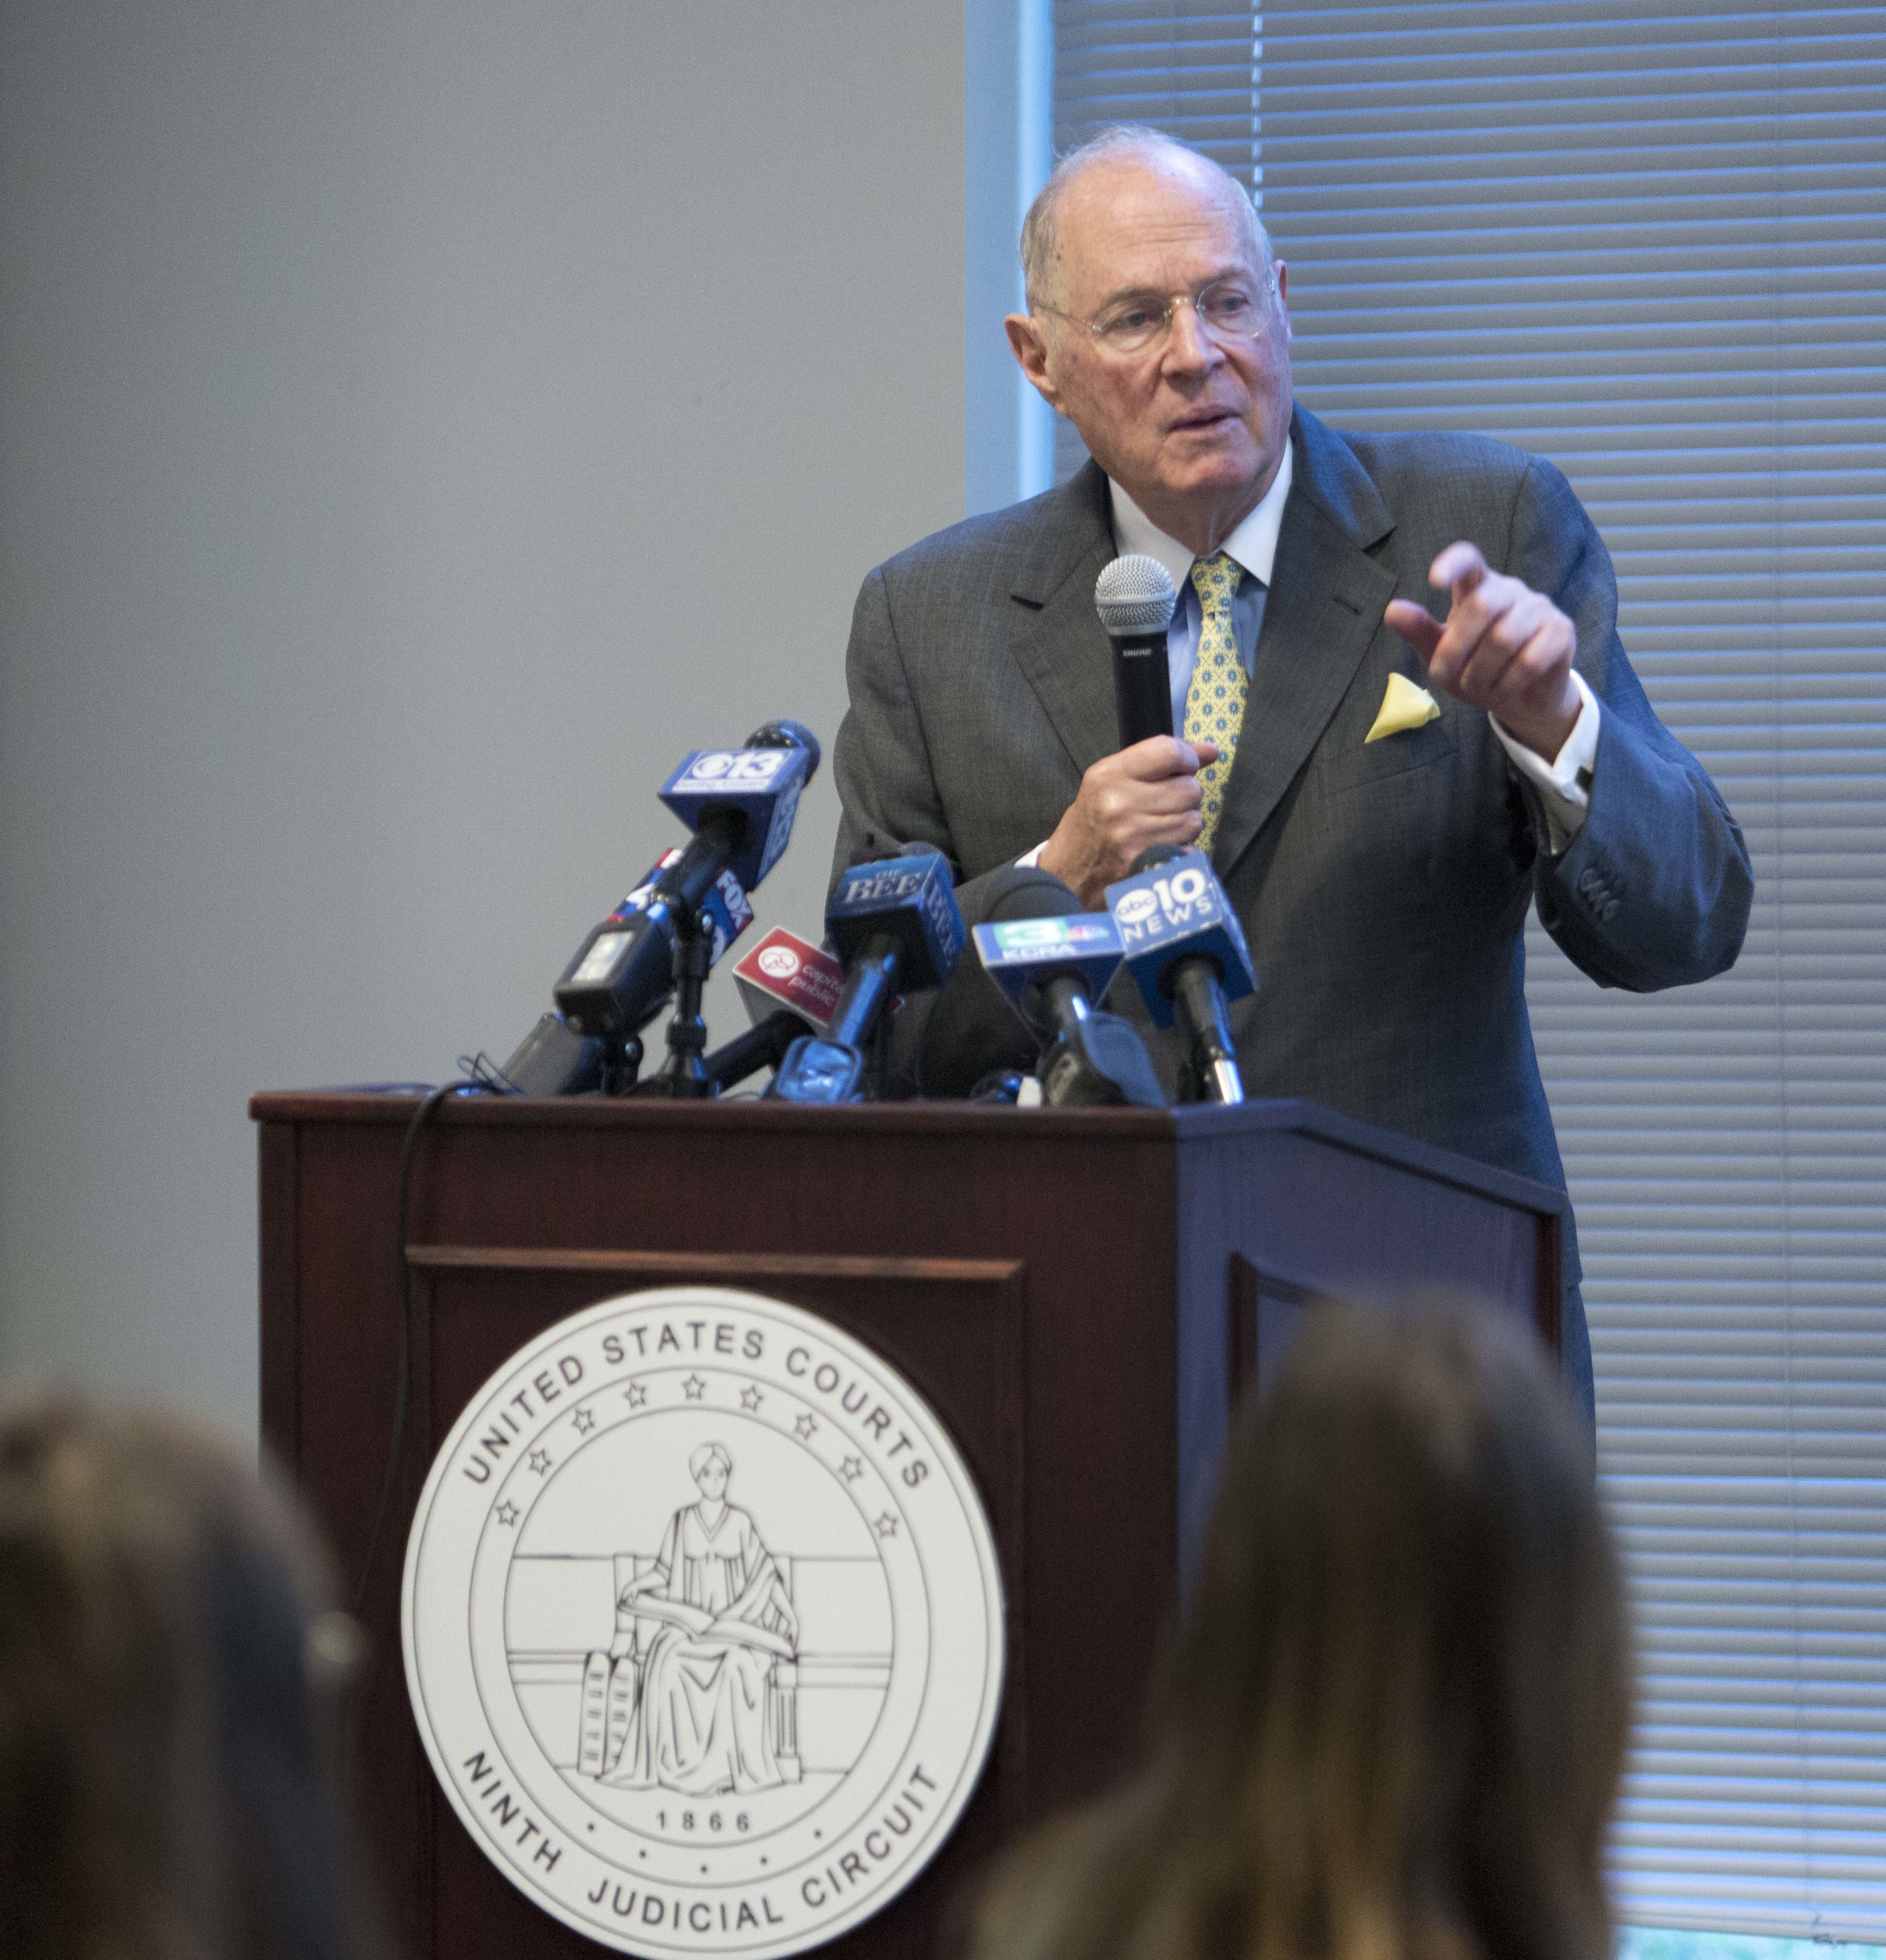 Former U.S. Supreme Court Justice Anthony Kennedy delivers the keynote speech during a luncheon held for high school civics students in Sacramento, Calif., on Friday, Sept. 28, 2018. Kennedy declined to comment on the confirmation process of Judge Brett Kavanaugh during the Constitution Day event sponsored by the 9th circuit court. (AP Photo/Steve Yeater)